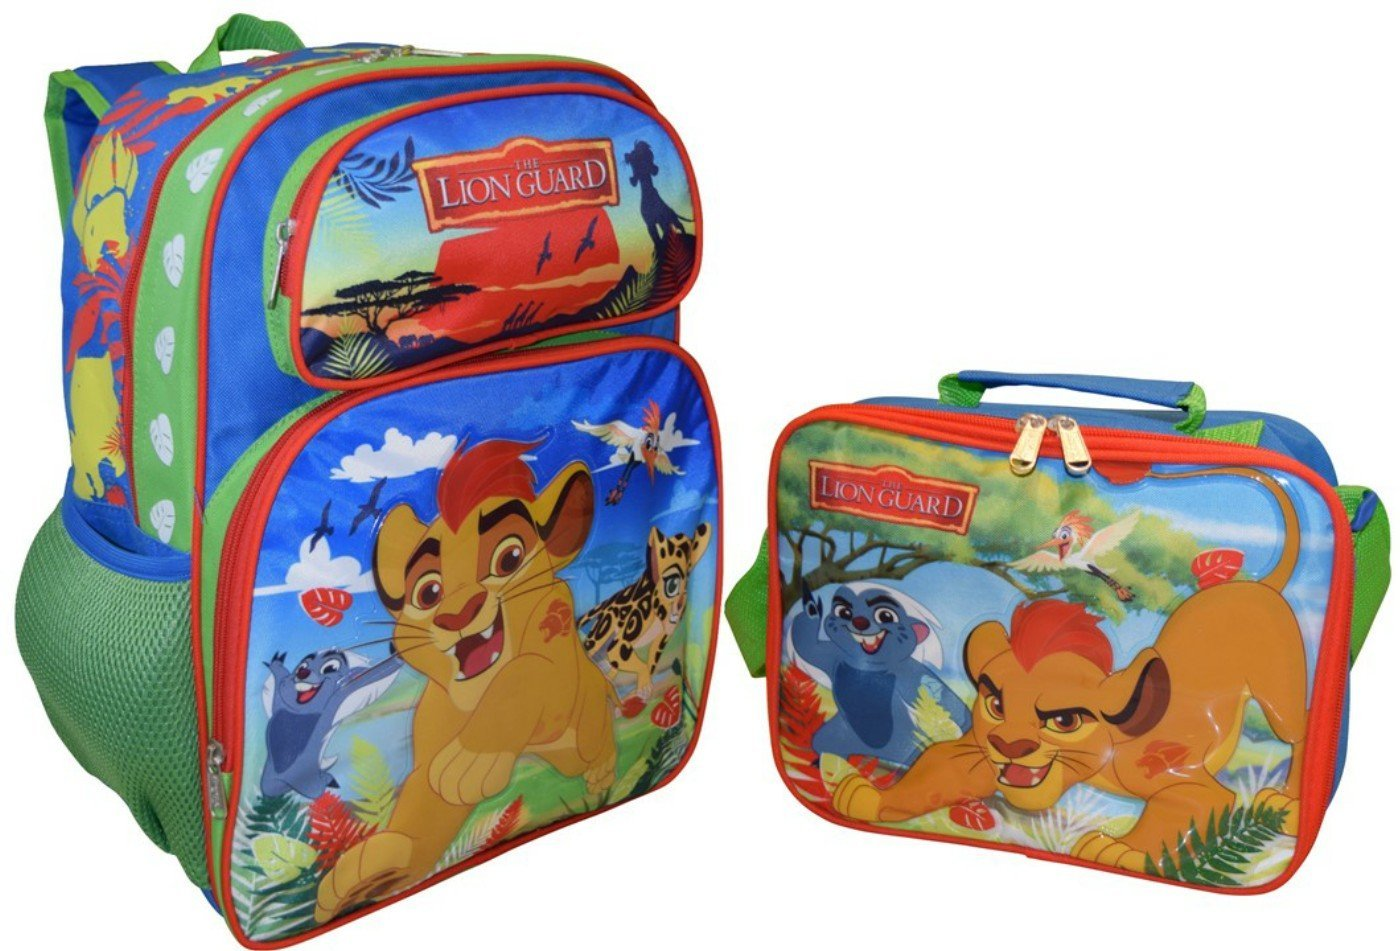 855a9d46f92 Buy Disney Lion Guard Backpack and Lunch Bag Combo Set in Cheap ...